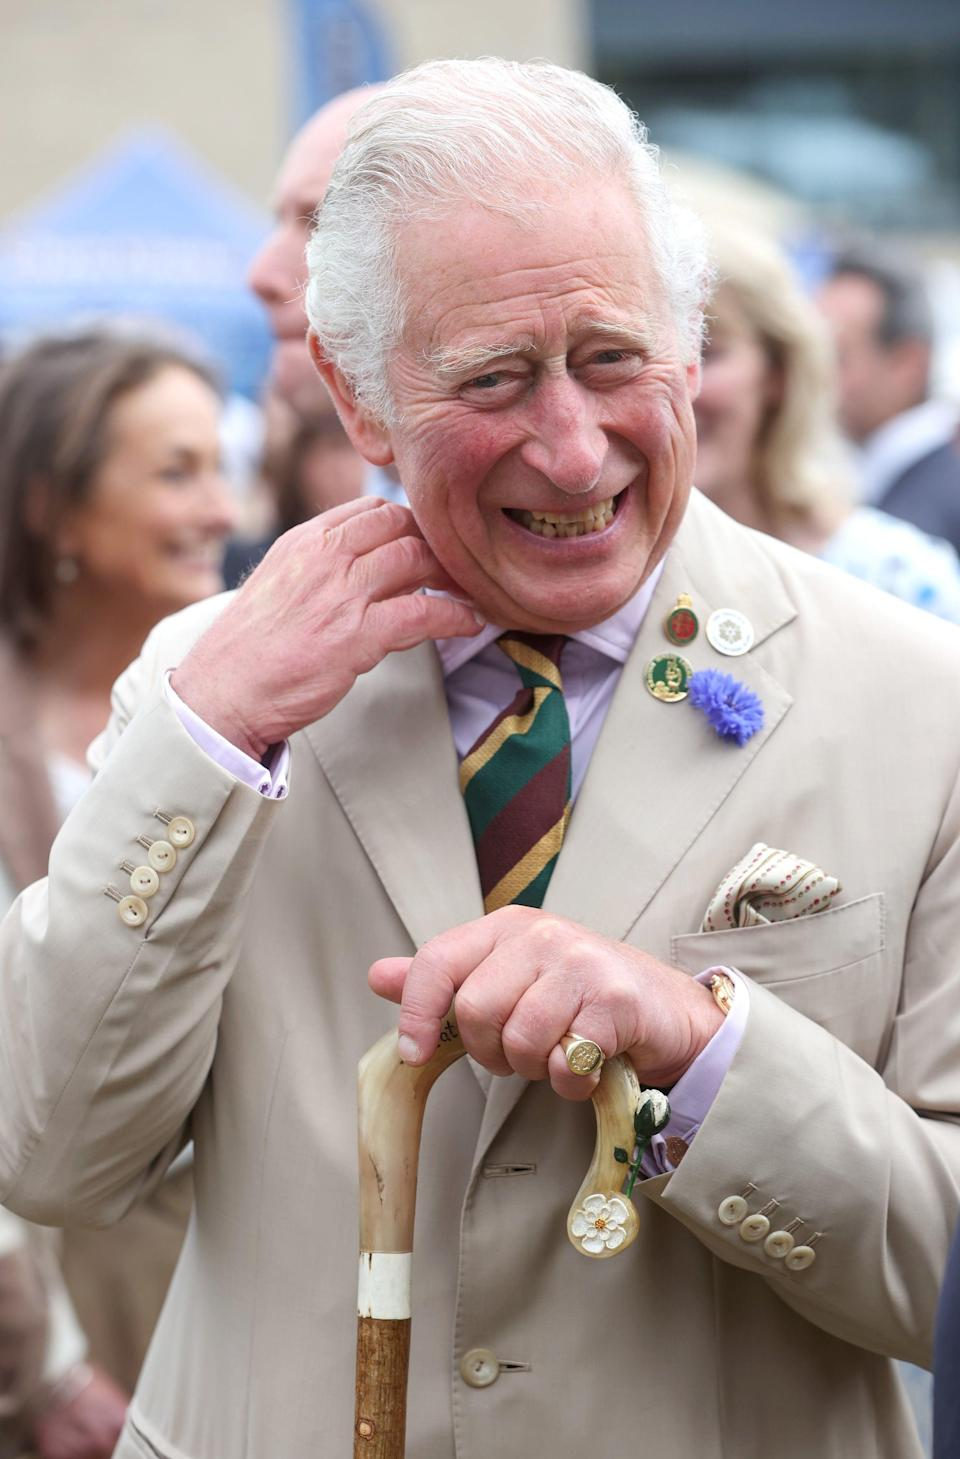 The Prince of Wales enjoyed his visit to the the Great Yorkshire Show (PA)